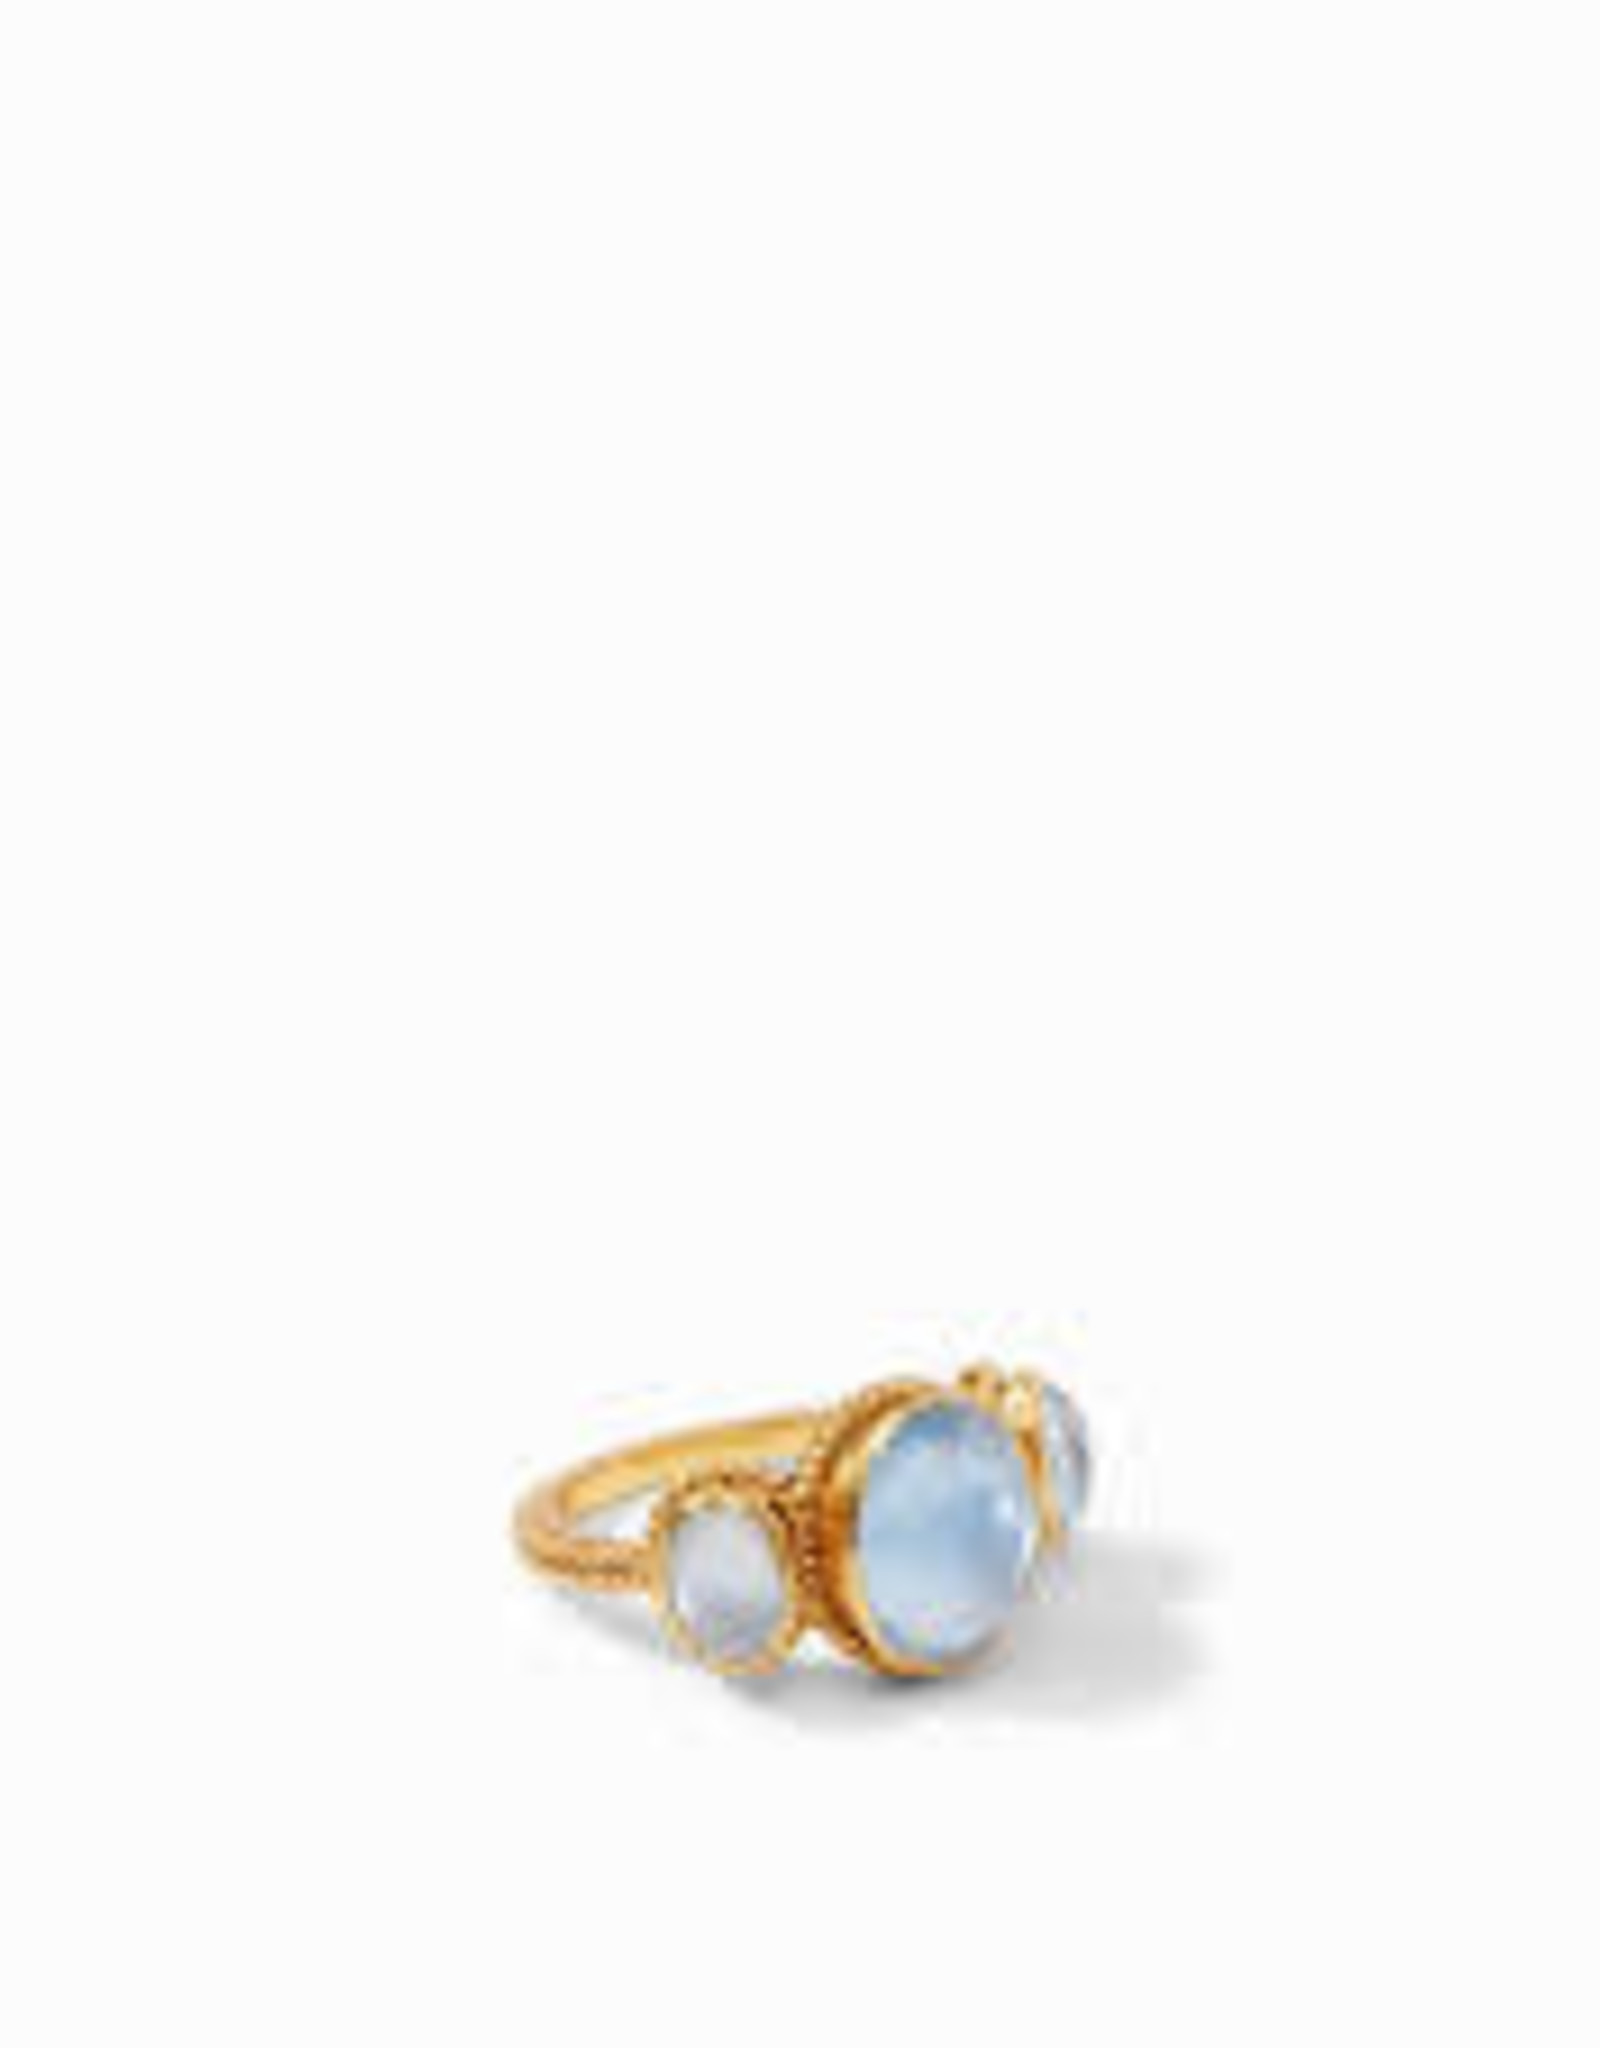 Julie Vos Calypso Ring Gold Iridescent Chalcedony Blue - Size 6